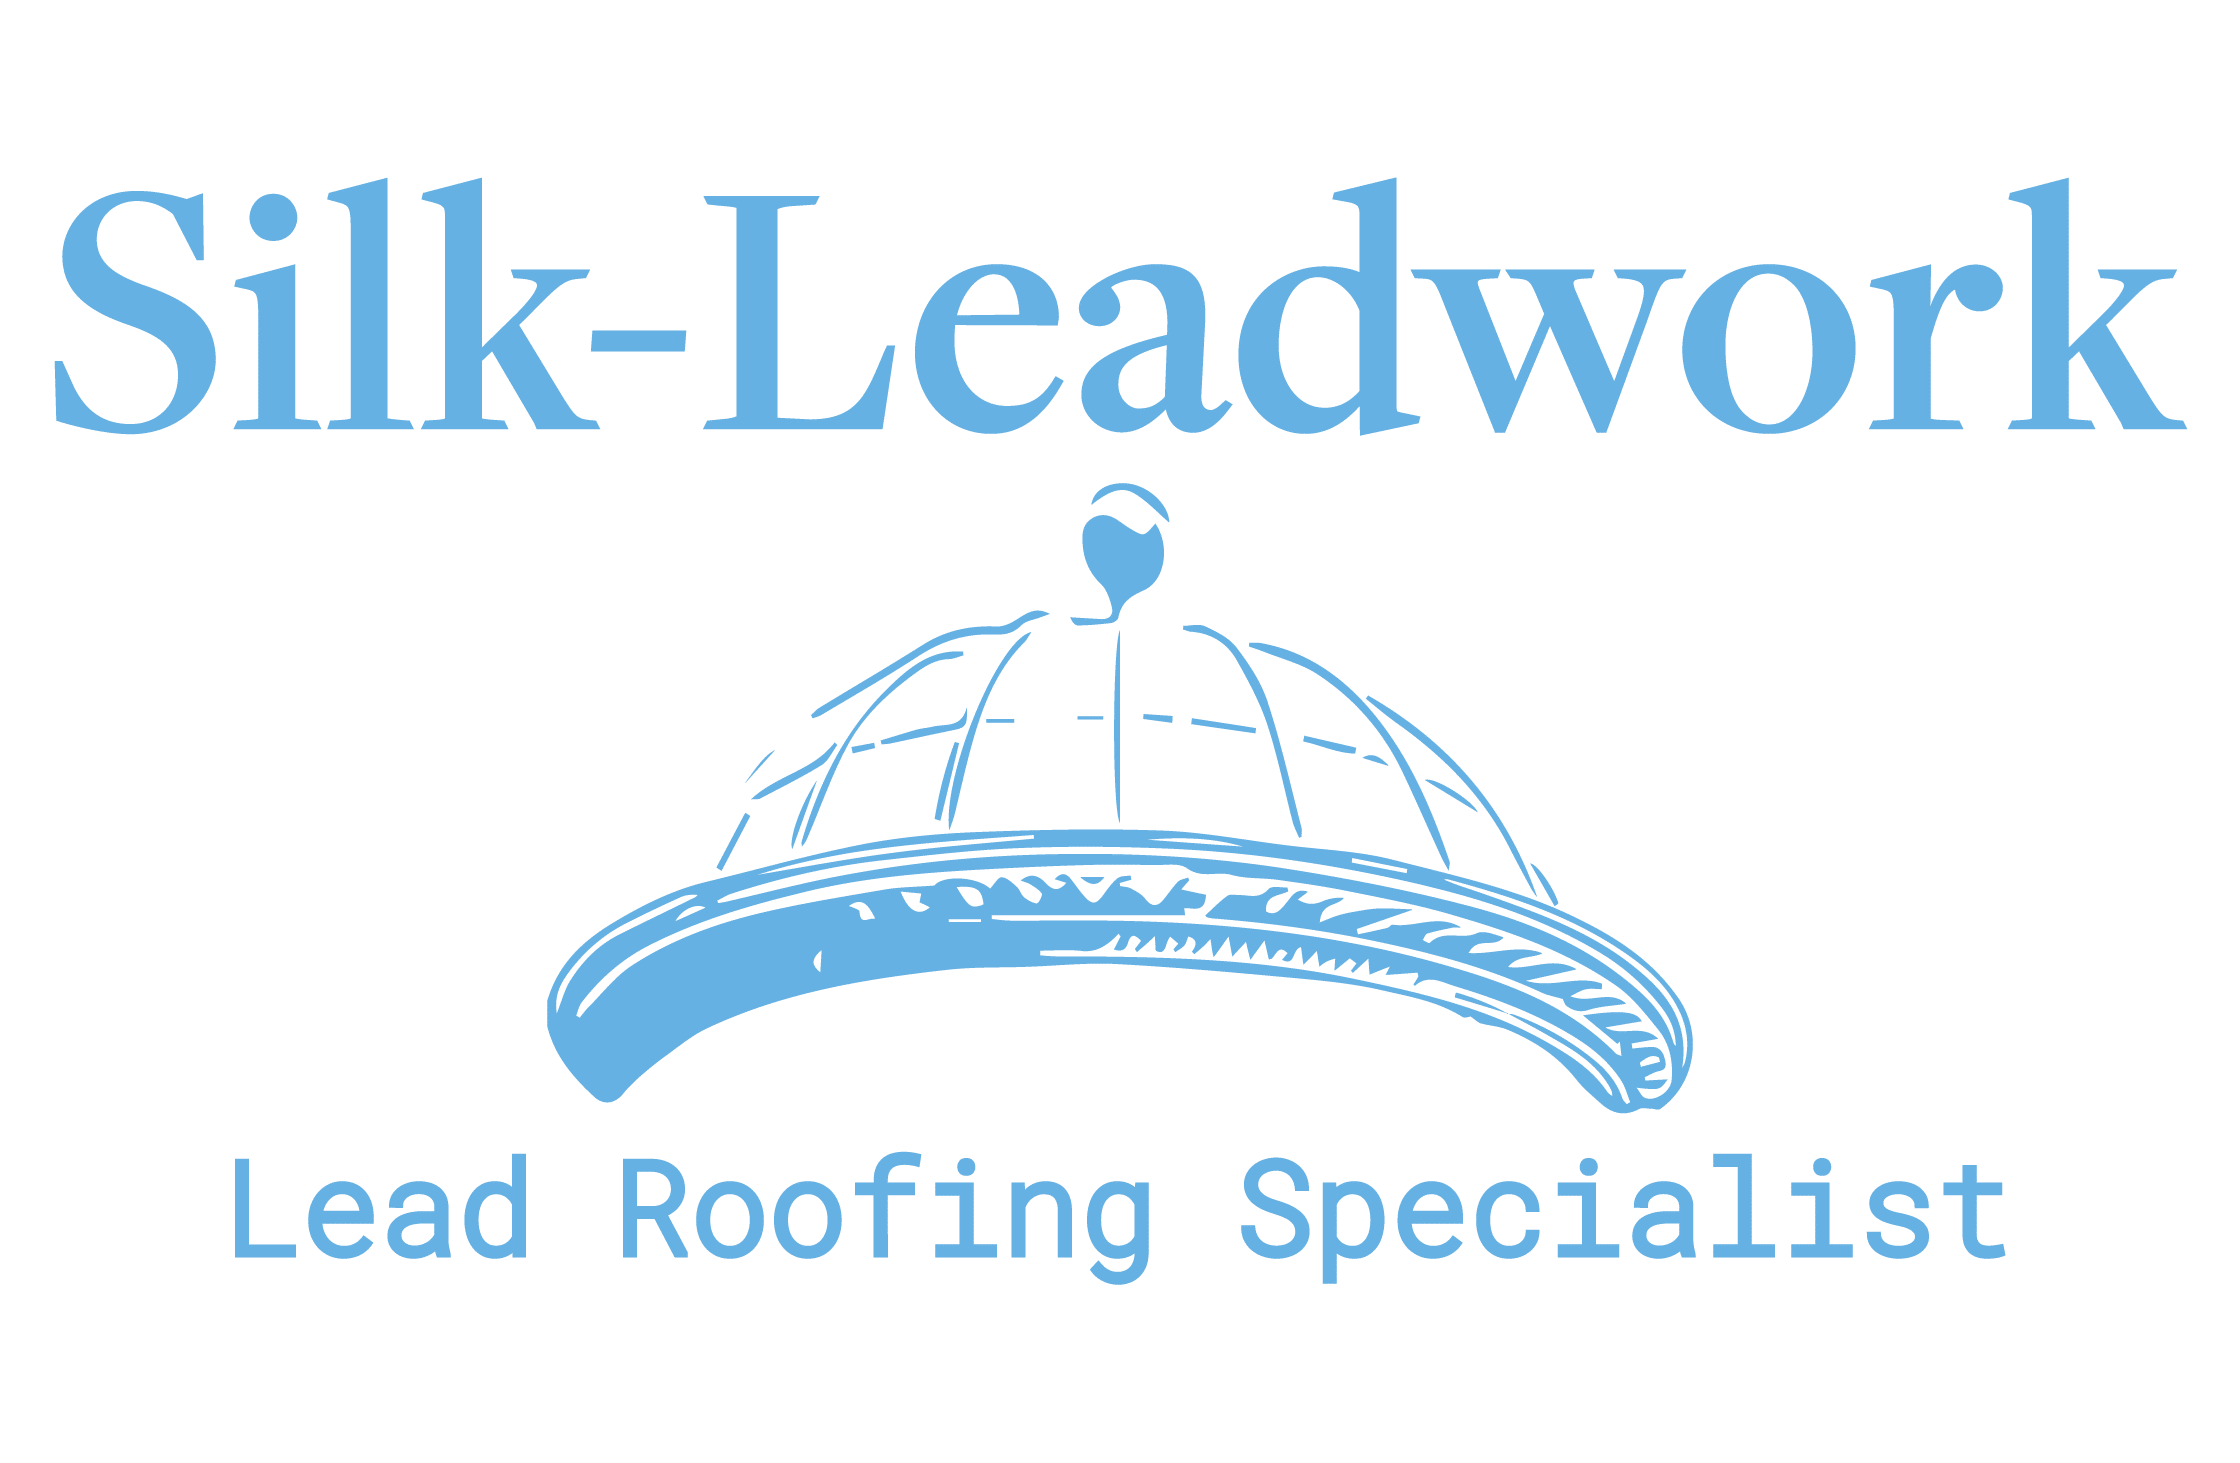 Lead Roofing | Slik-Leadwork